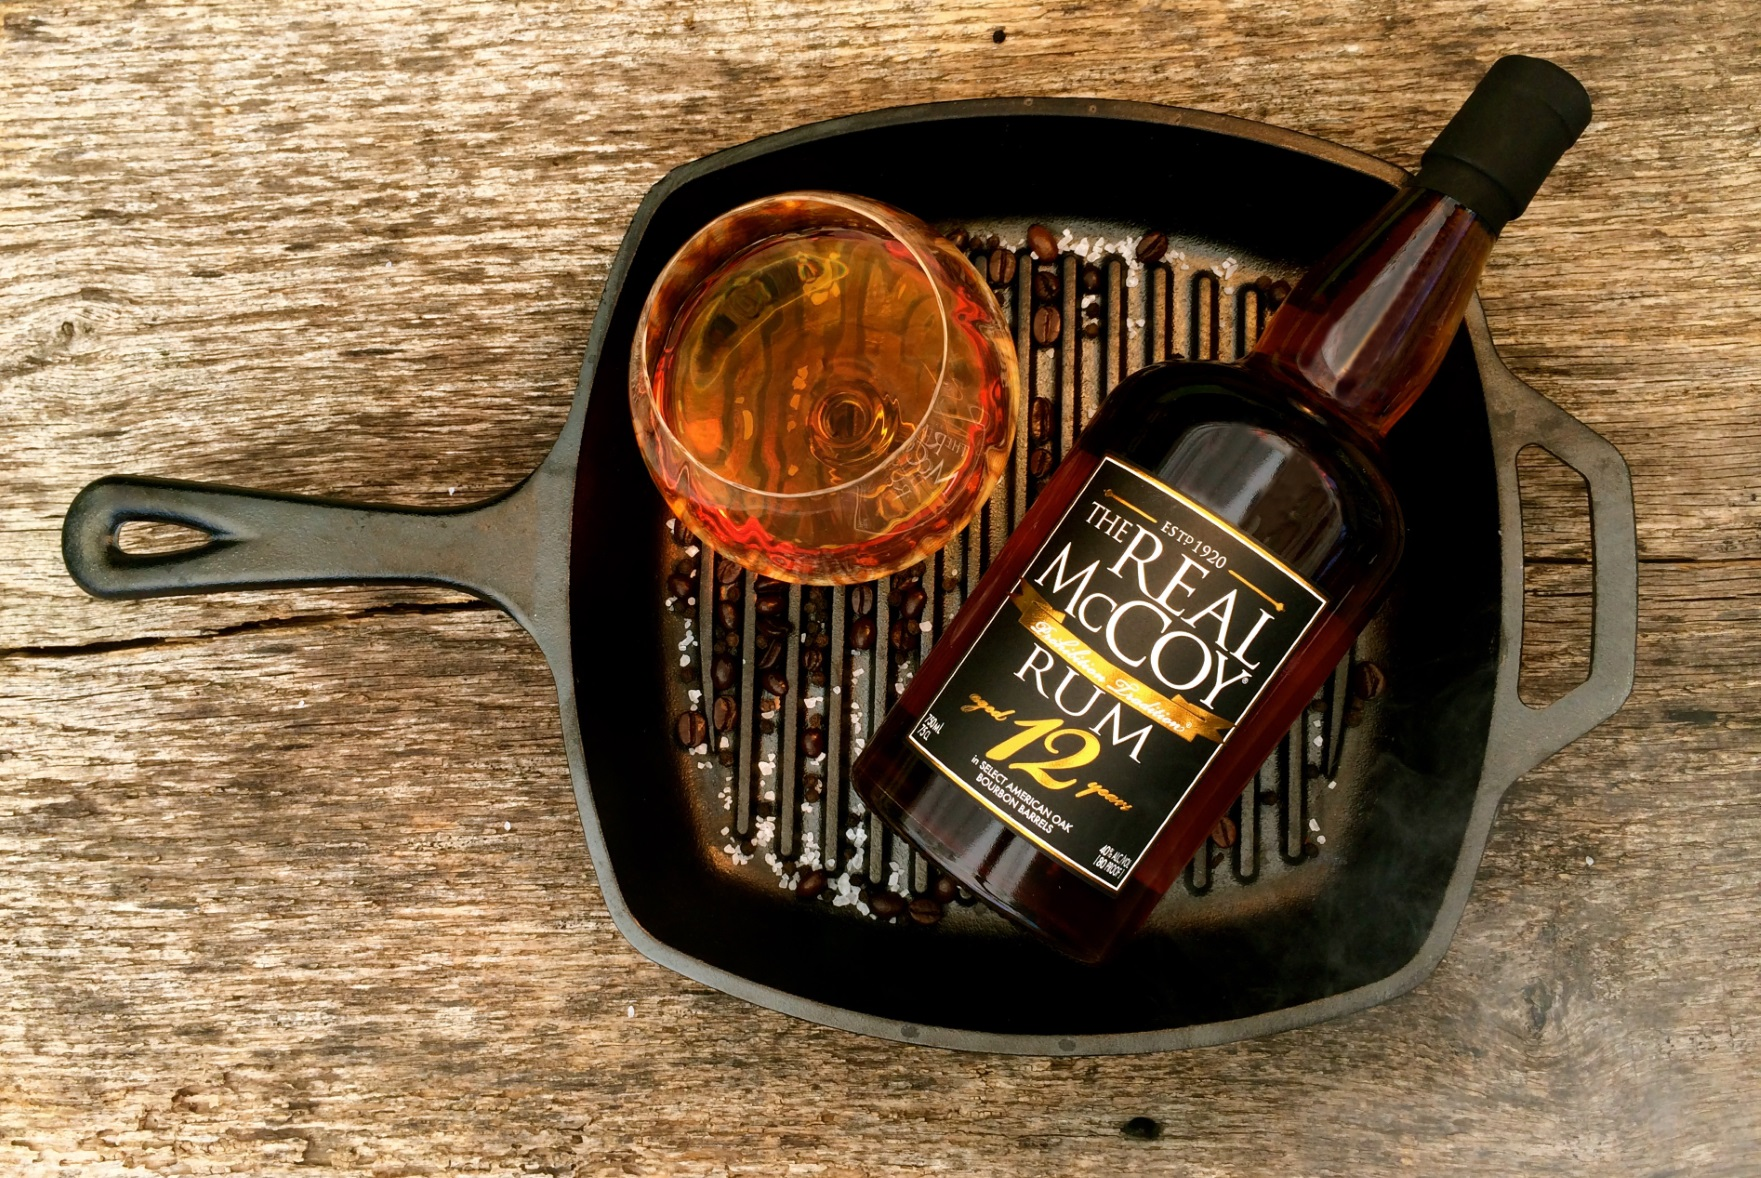 Connecticut's Real McCoy Rum Complements Glass and Grill